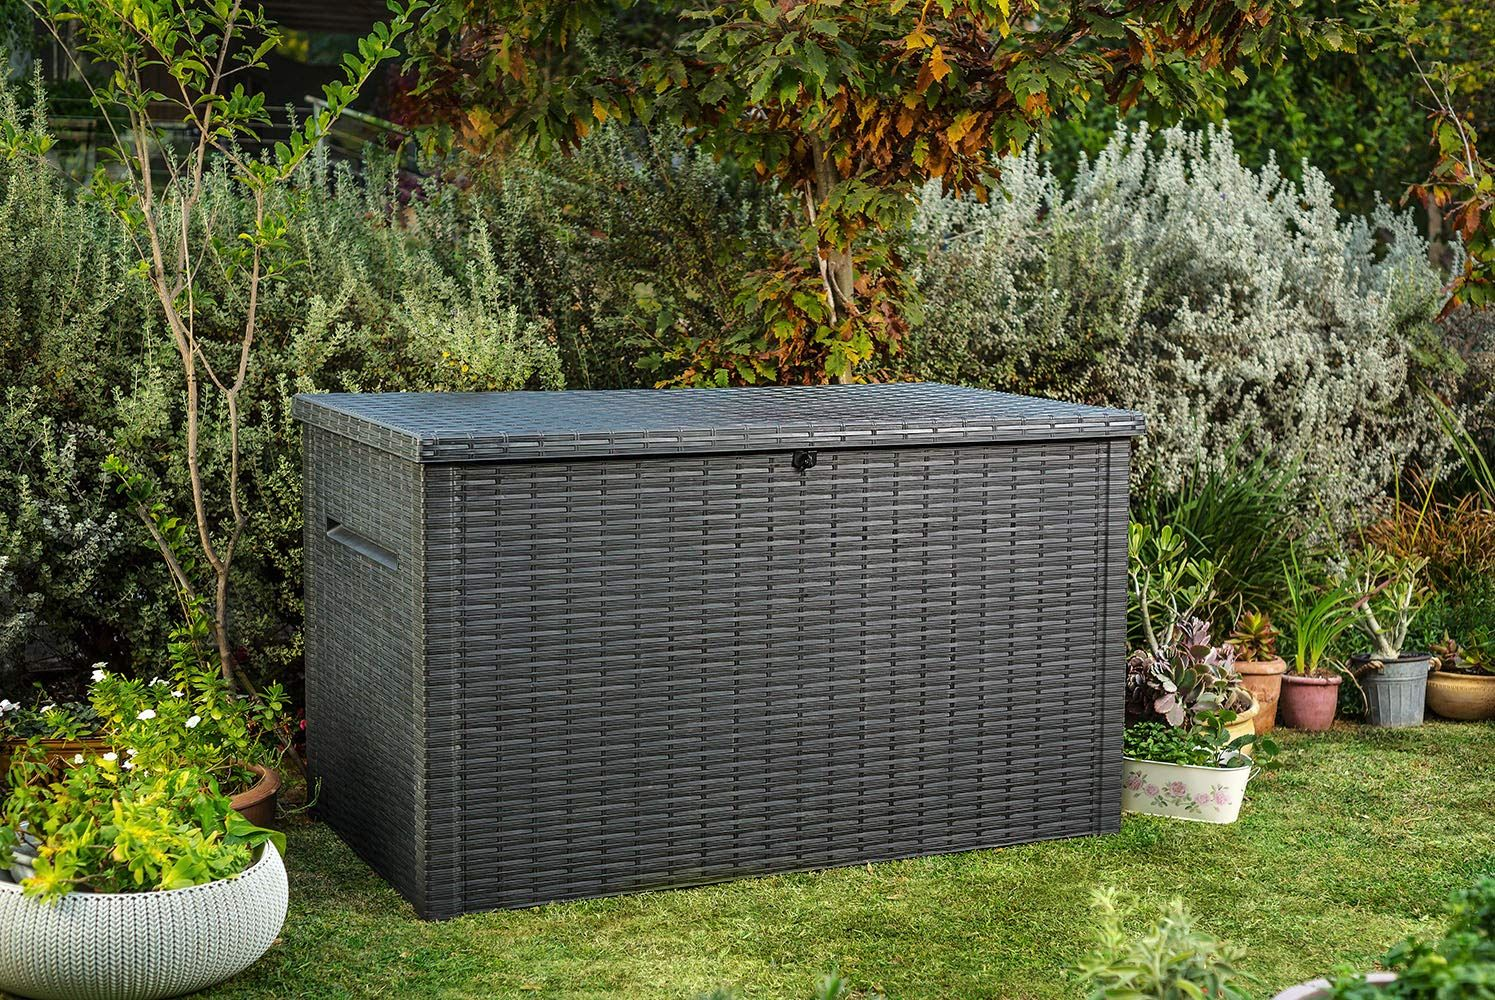 Keter Java Xxl 230 Gallon Outdoor Storage Deck Box Want To Know